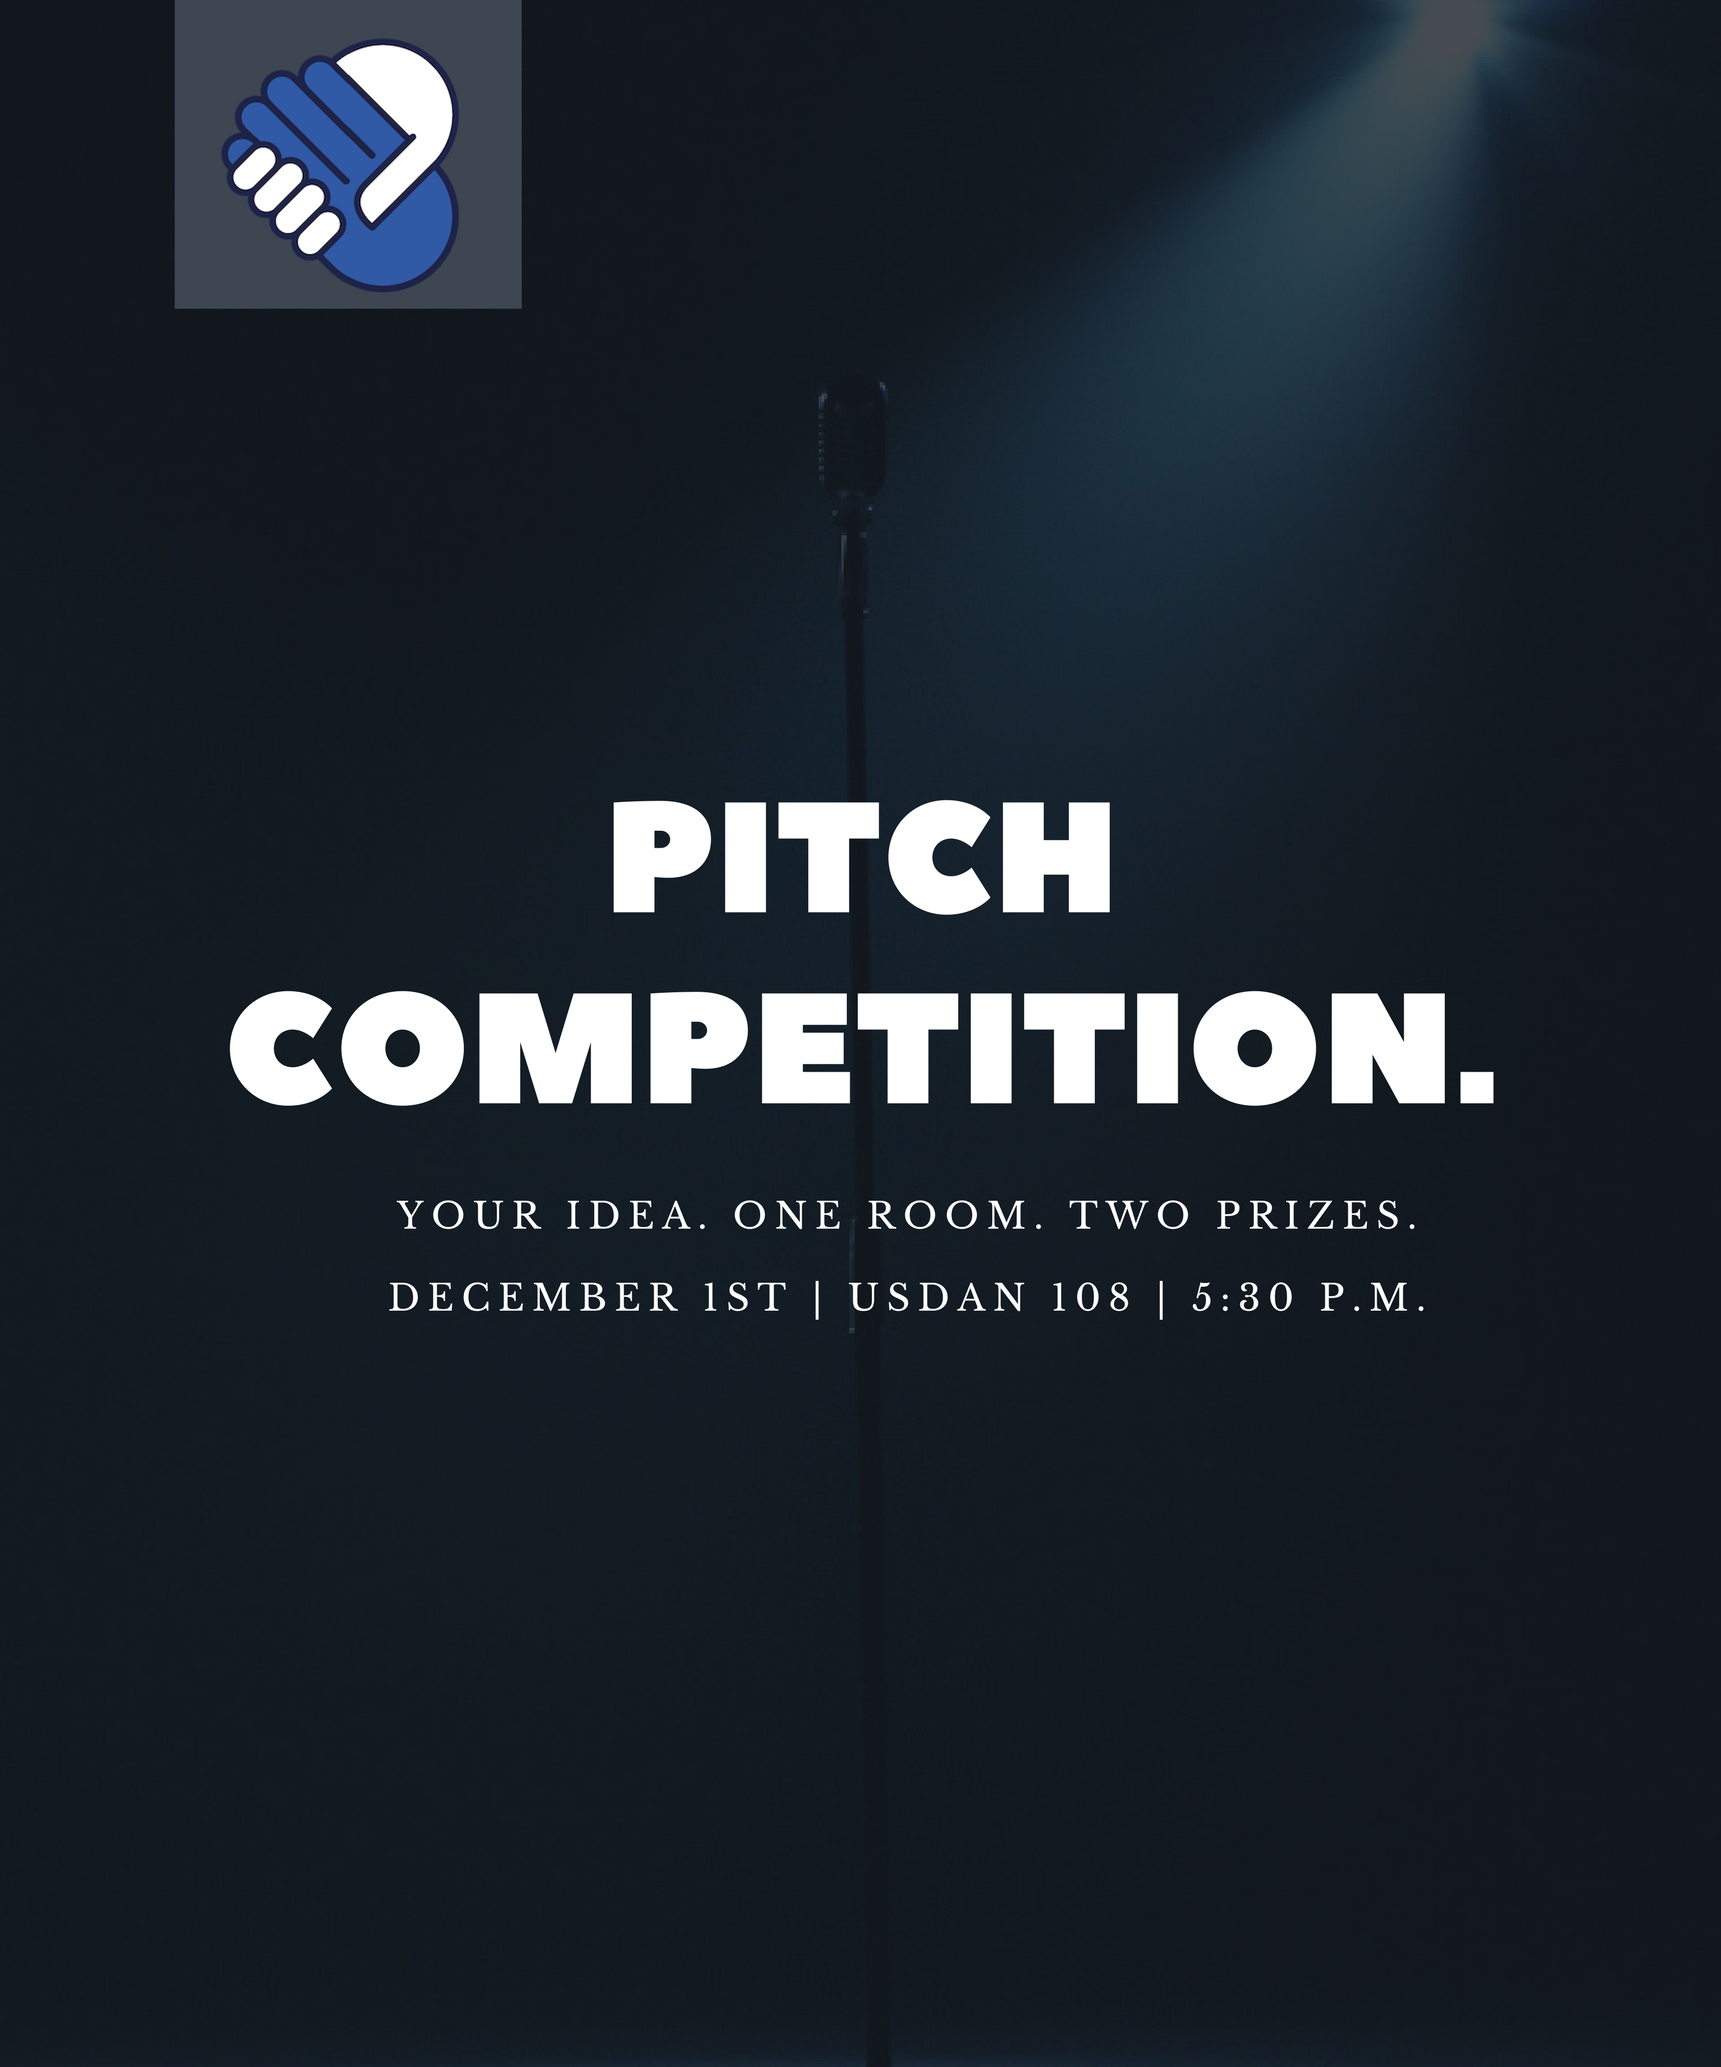 Pitch Competition copy.png